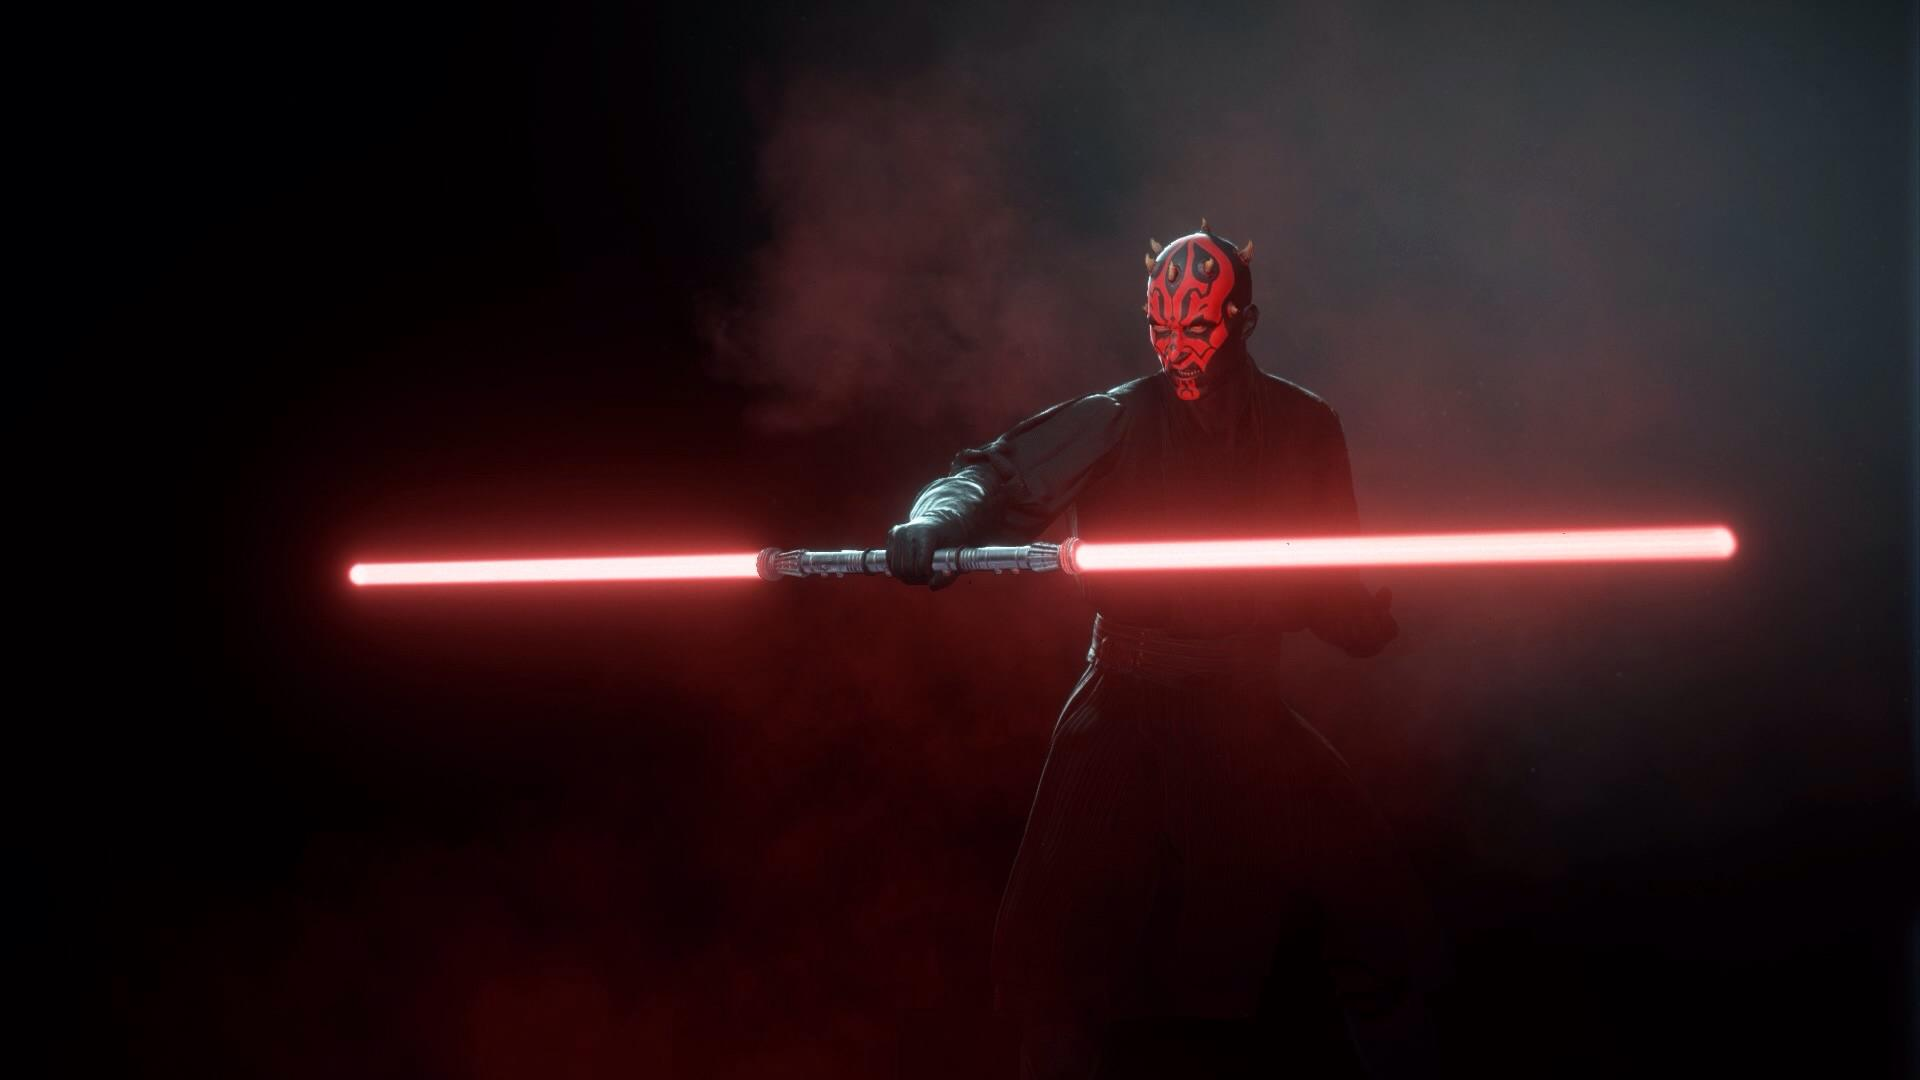 Star Wars Darth Maul Wallpapers Top Free Star Wars Darth Maul Backgrounds Wallpaperaccess